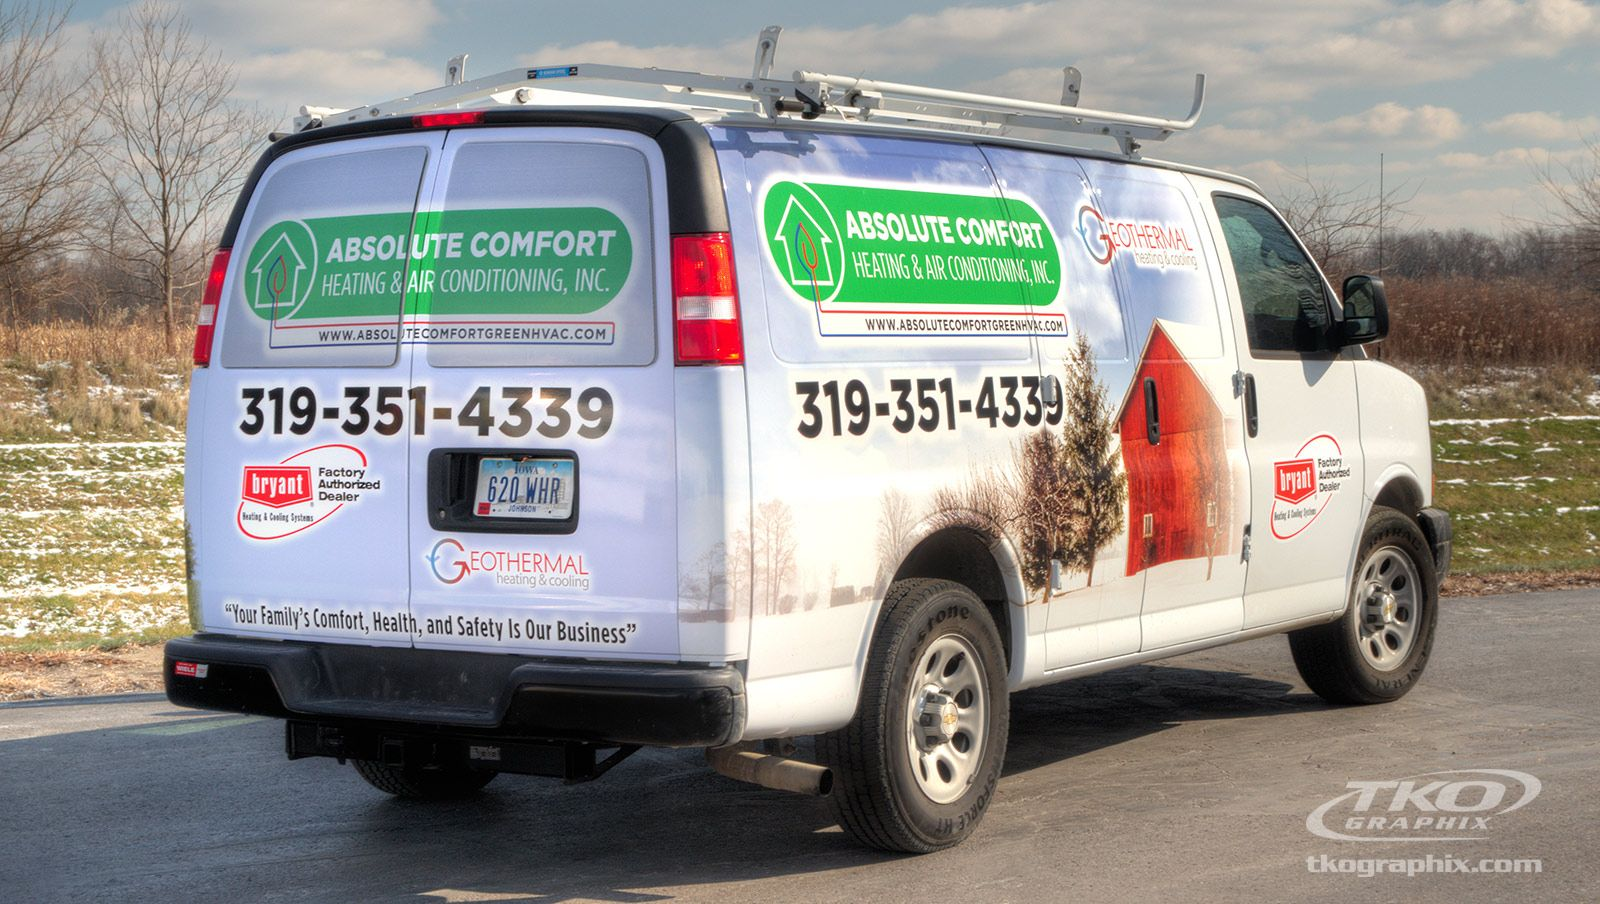 On The Road For Vehicle Graphics Iowa To Indiana With Images Vehicles Car Graphics Iowa